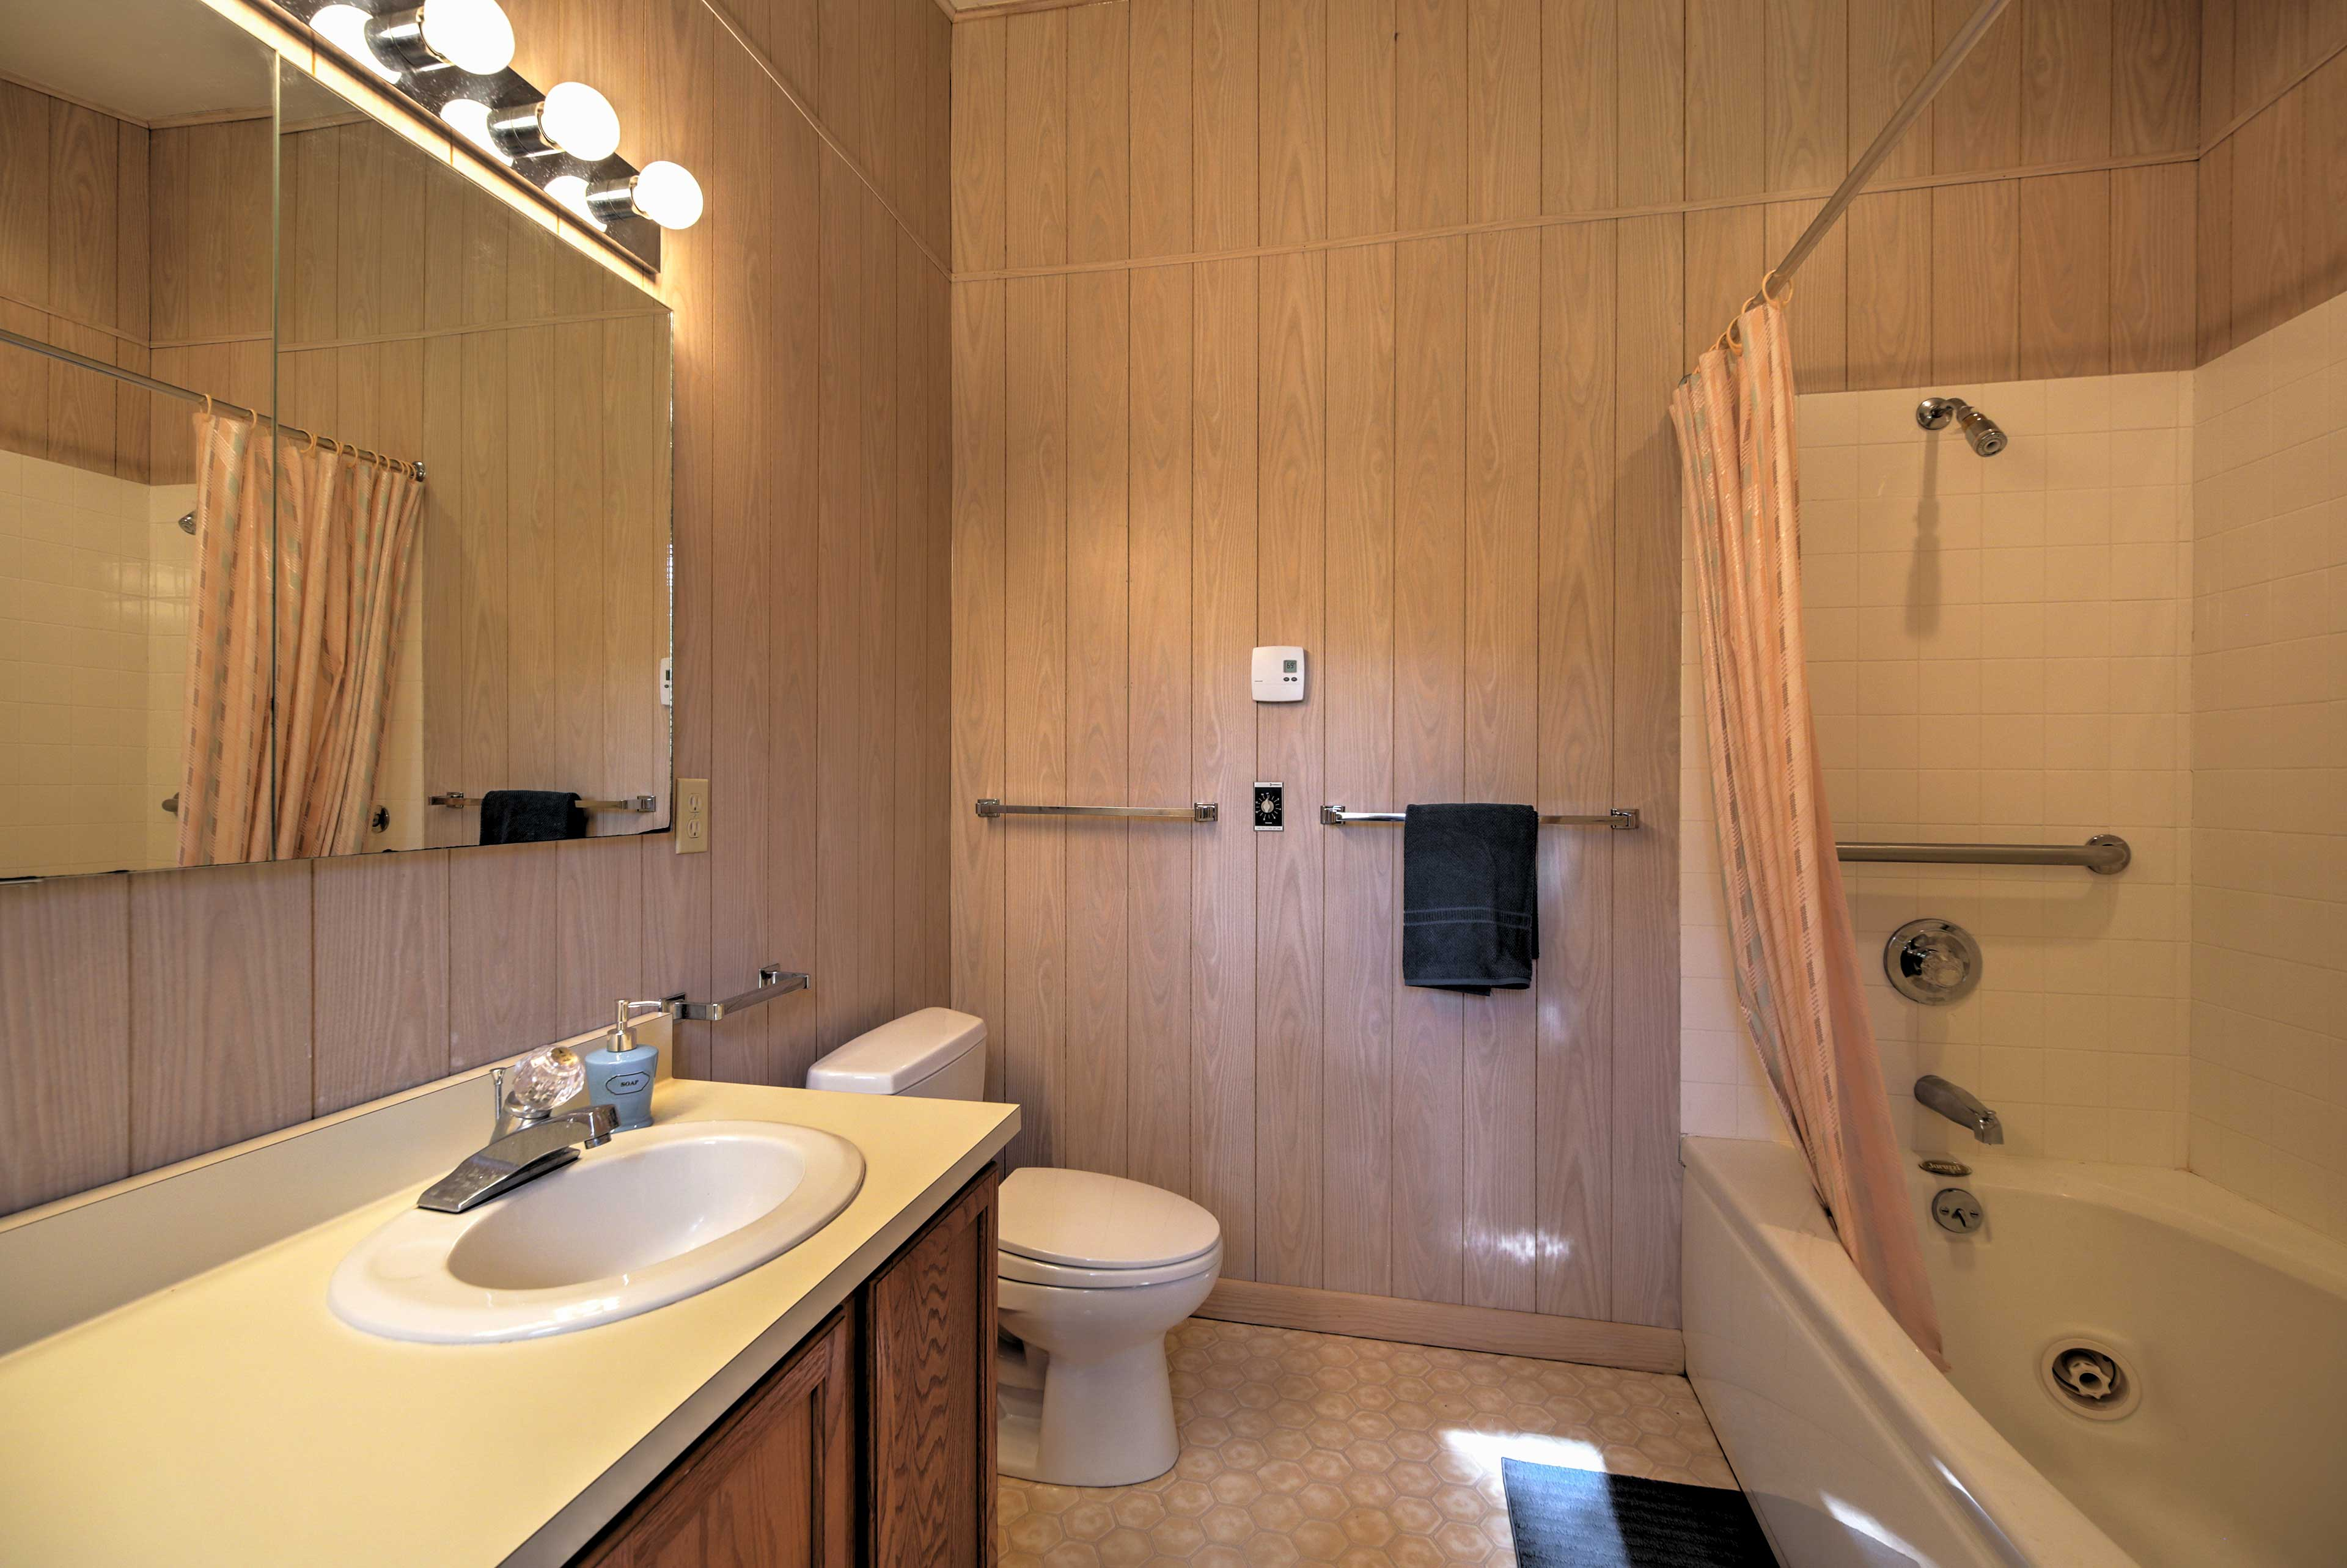 Freshen up for the day in this bathroom that includes a shower/tub combo.